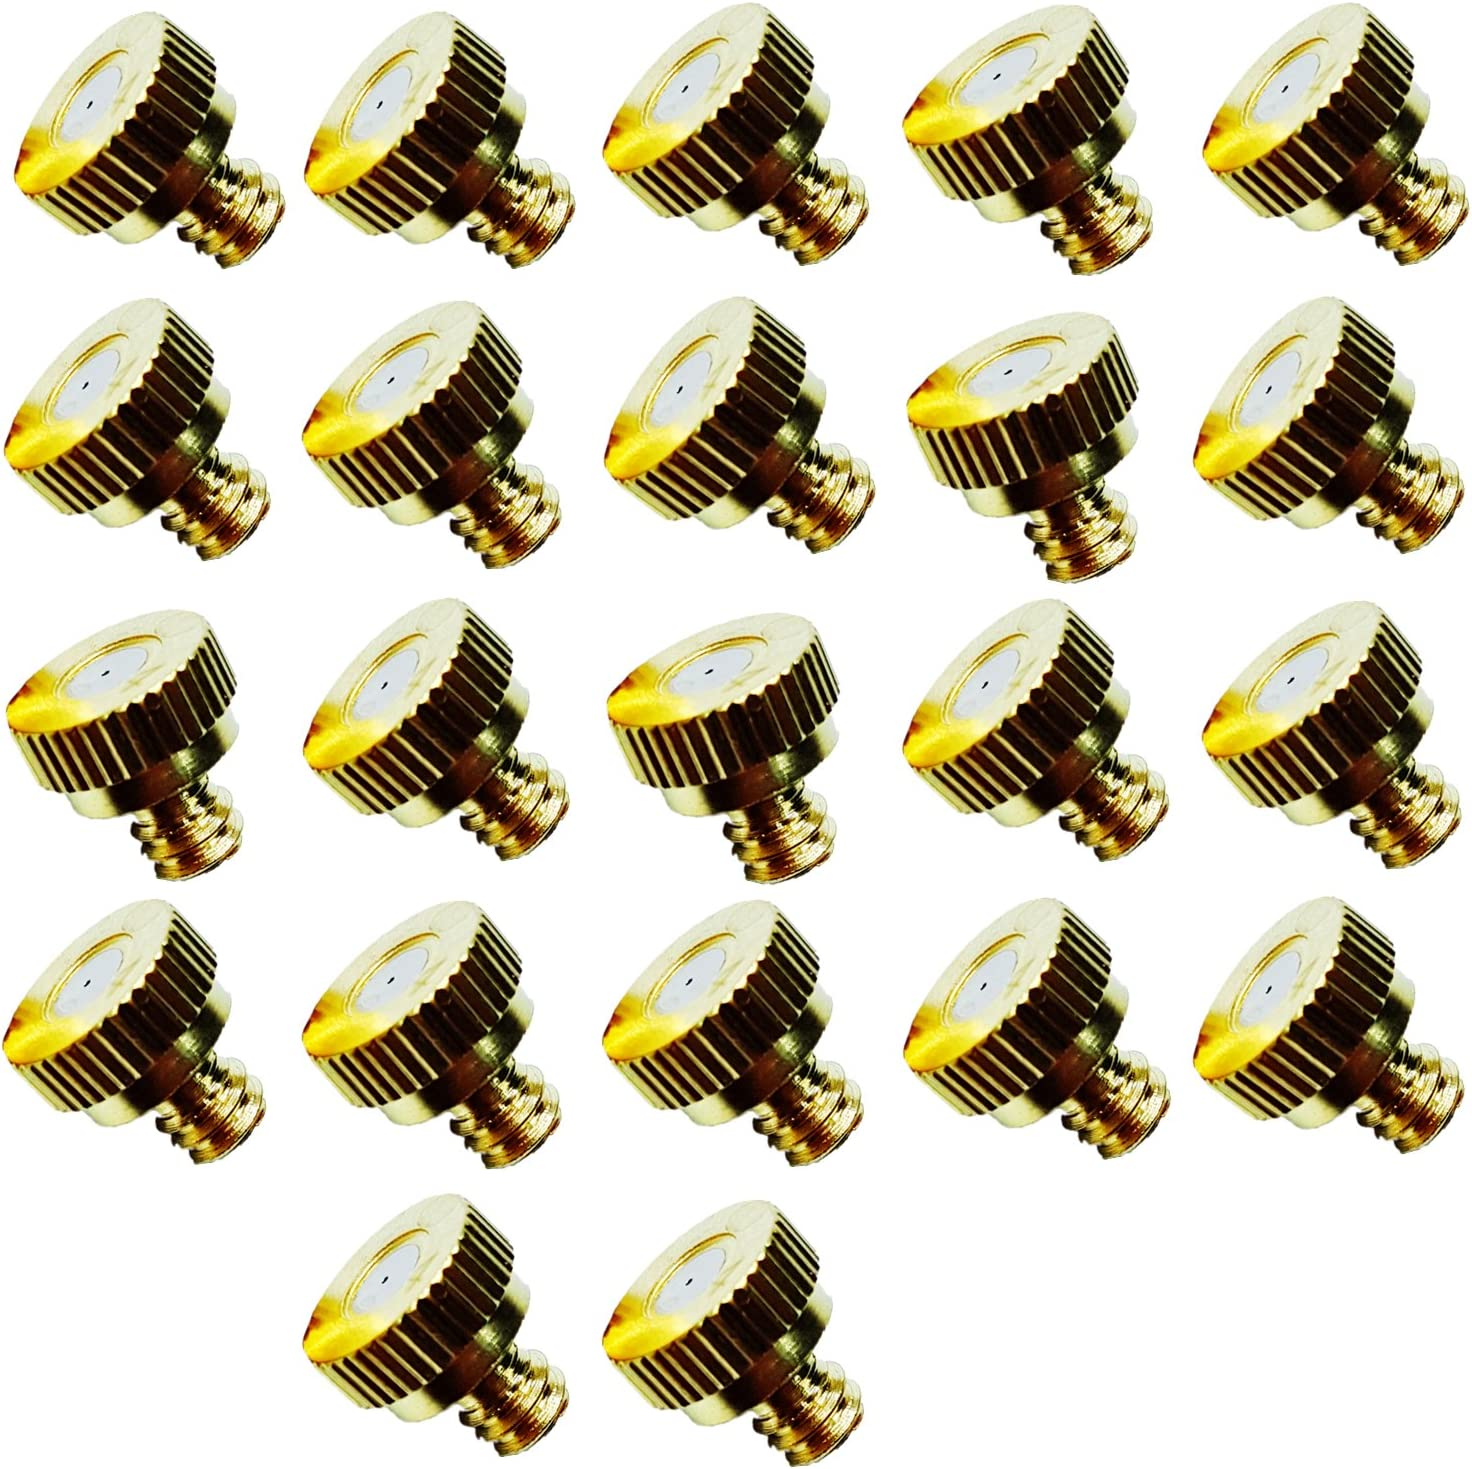 """Brass Misting Nozzles for Outdoor Cooling System 22 pcs,0.016"""" Orifice (0.4 mm) 10/24 UNC (Brass)"""